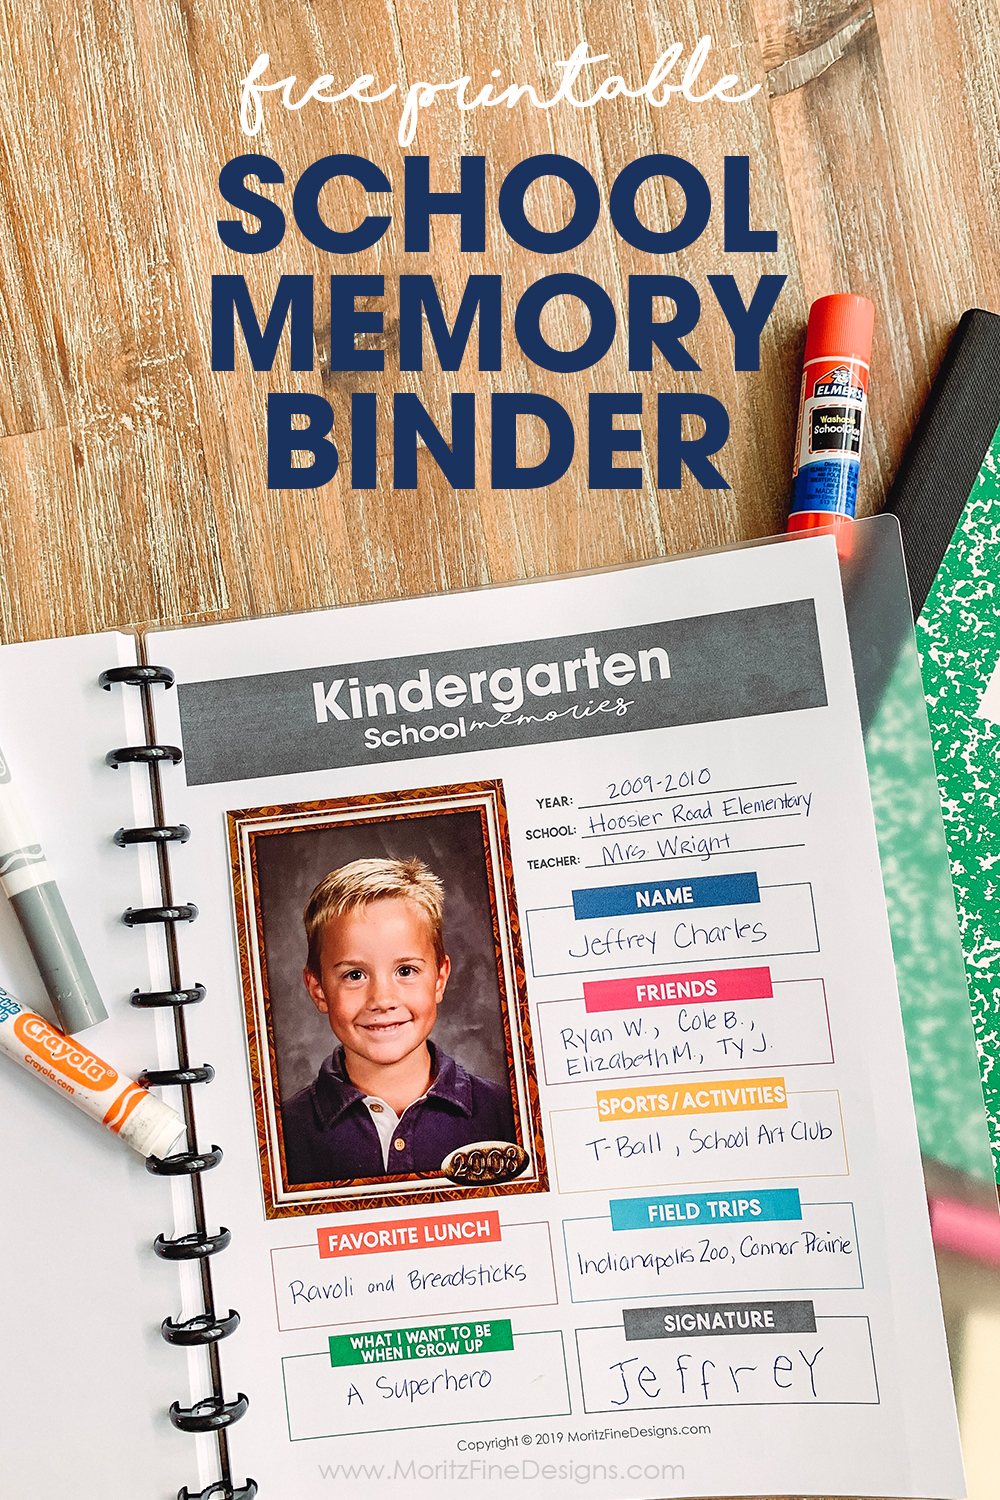 Keep track of your kid's favorite things about each school year with this free printable School Memory Binder for grades Pre-School through Grade 12.